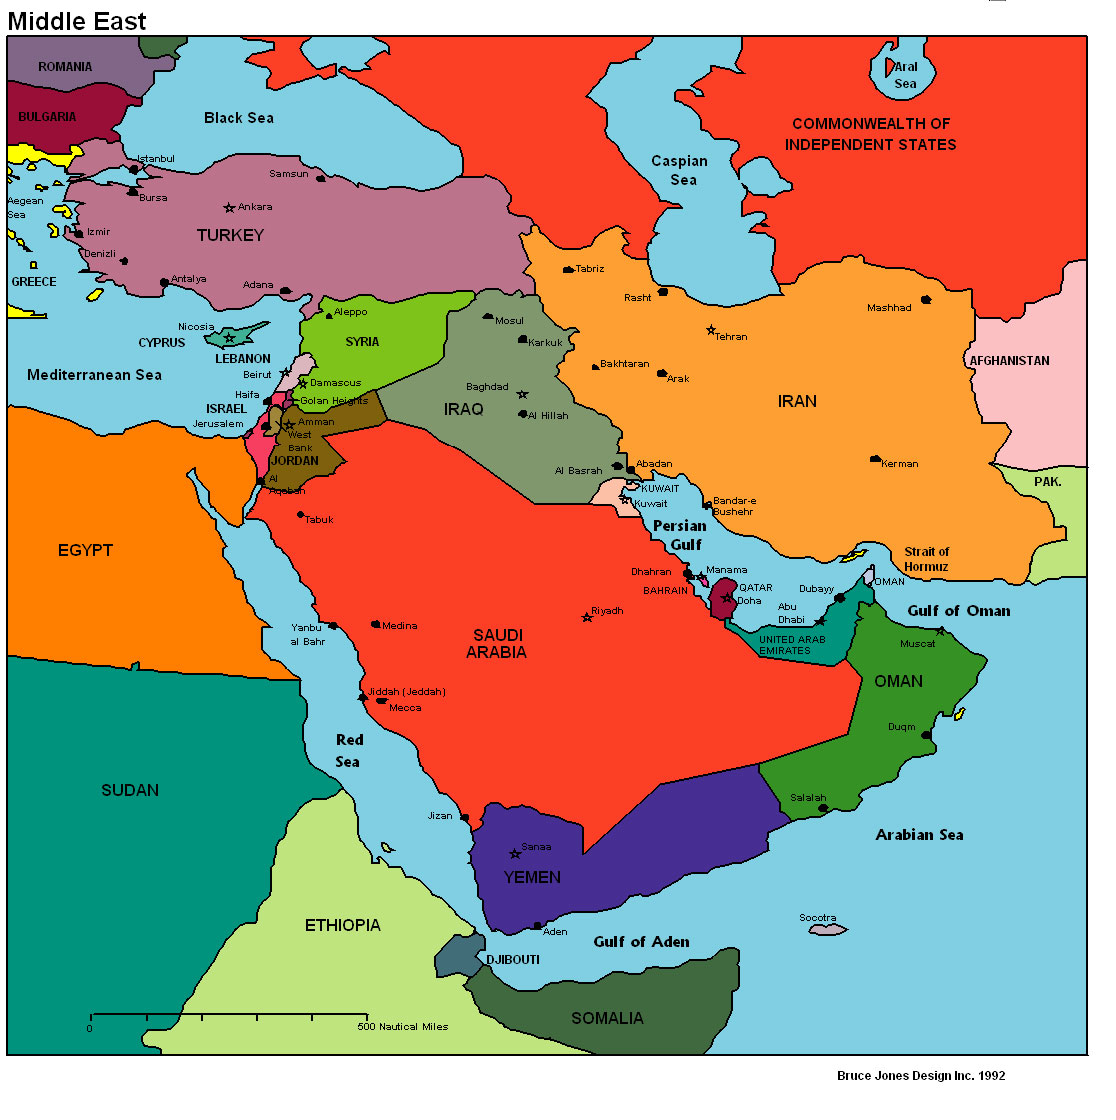 Middle East Political map, Middle East